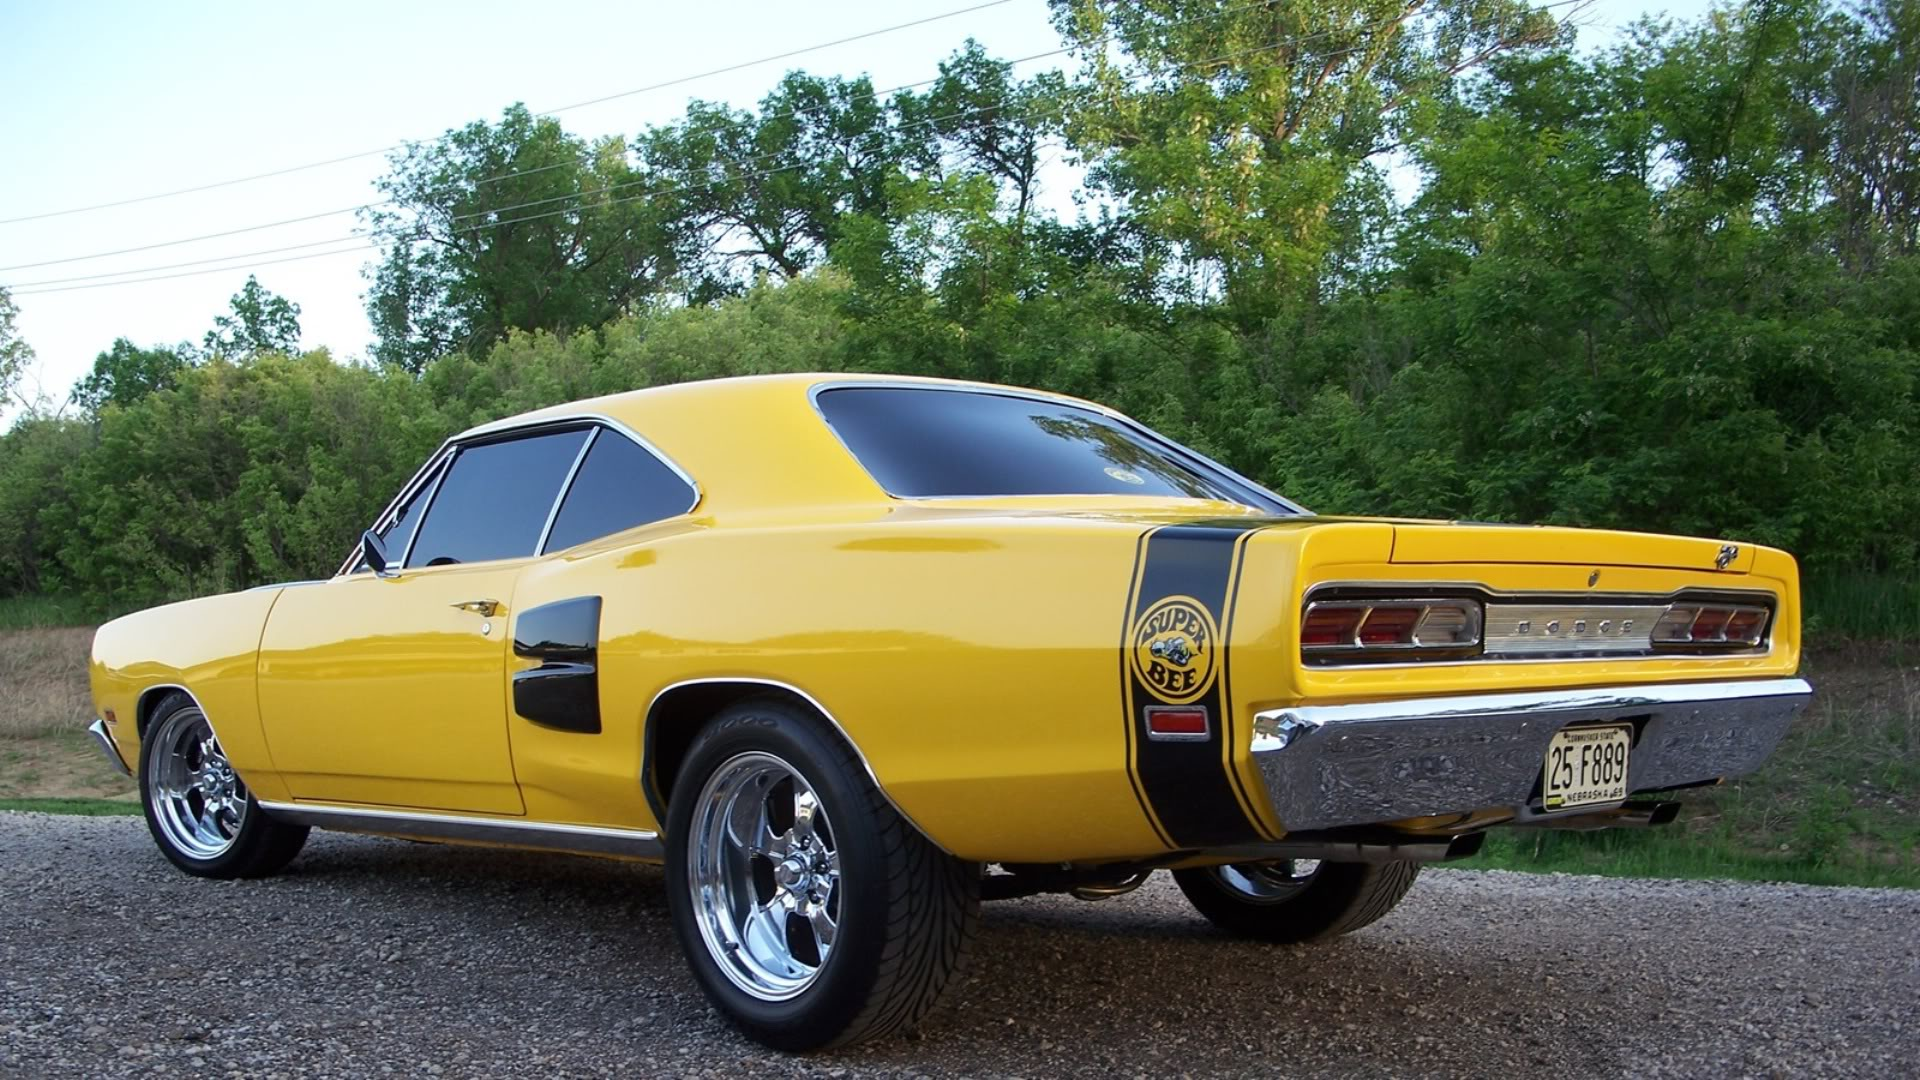 The Top 40 Classic Muscle Cars in History, Ranked - Page 15 of 41